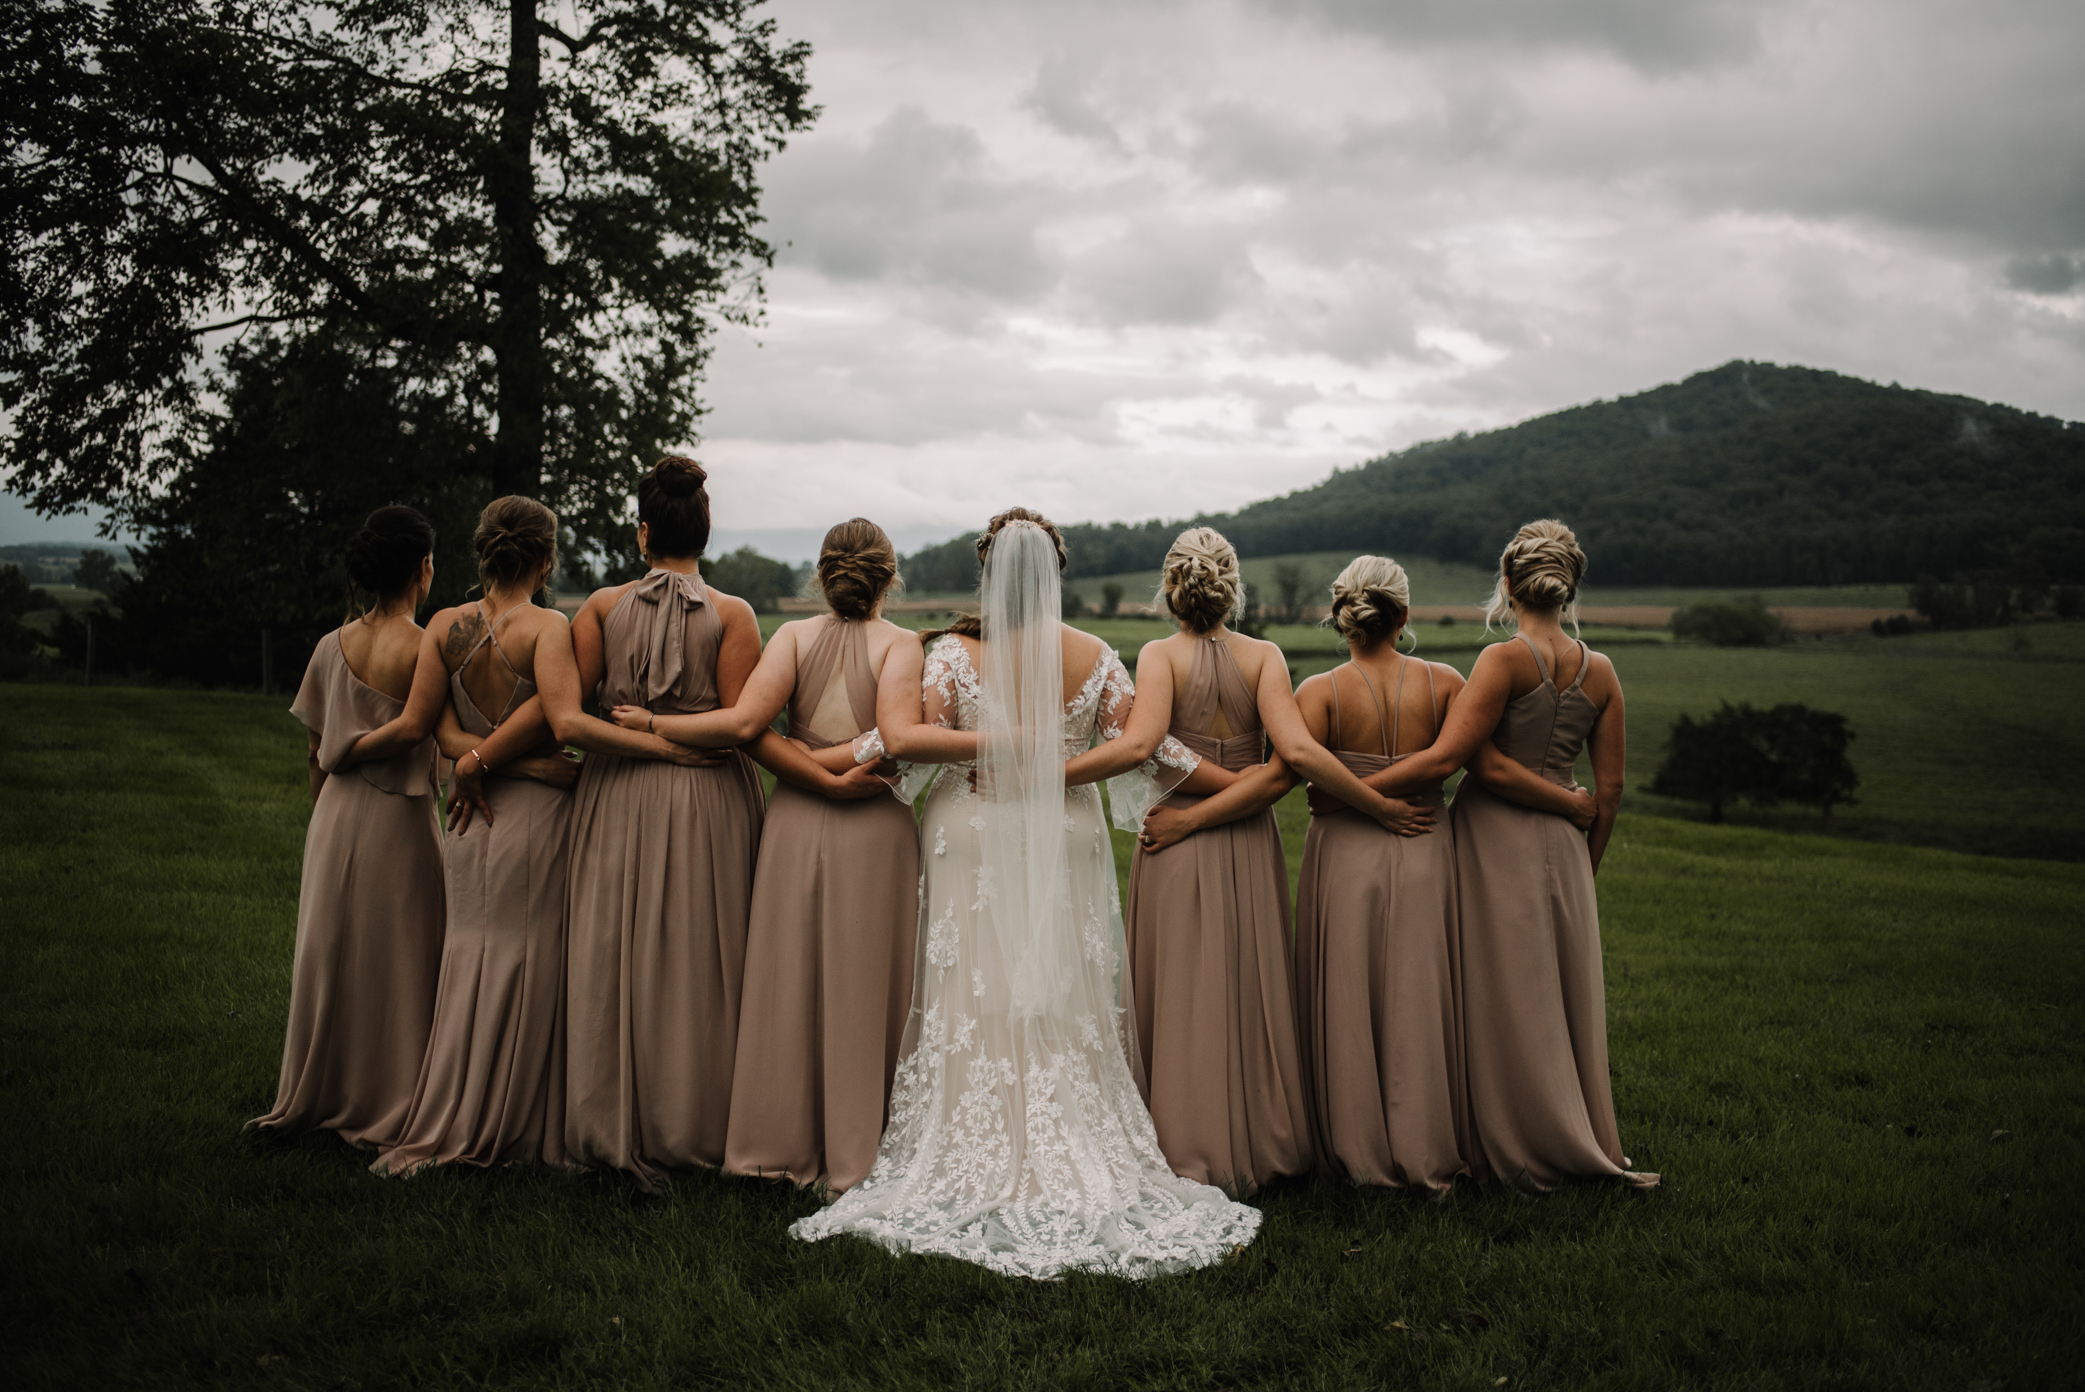 Jordan and Danielle - Shenandoah Woods Luray Virginia Wedding - Foggy Mountain and Forest Wedding - White Sails Creative Photography_71.JPG